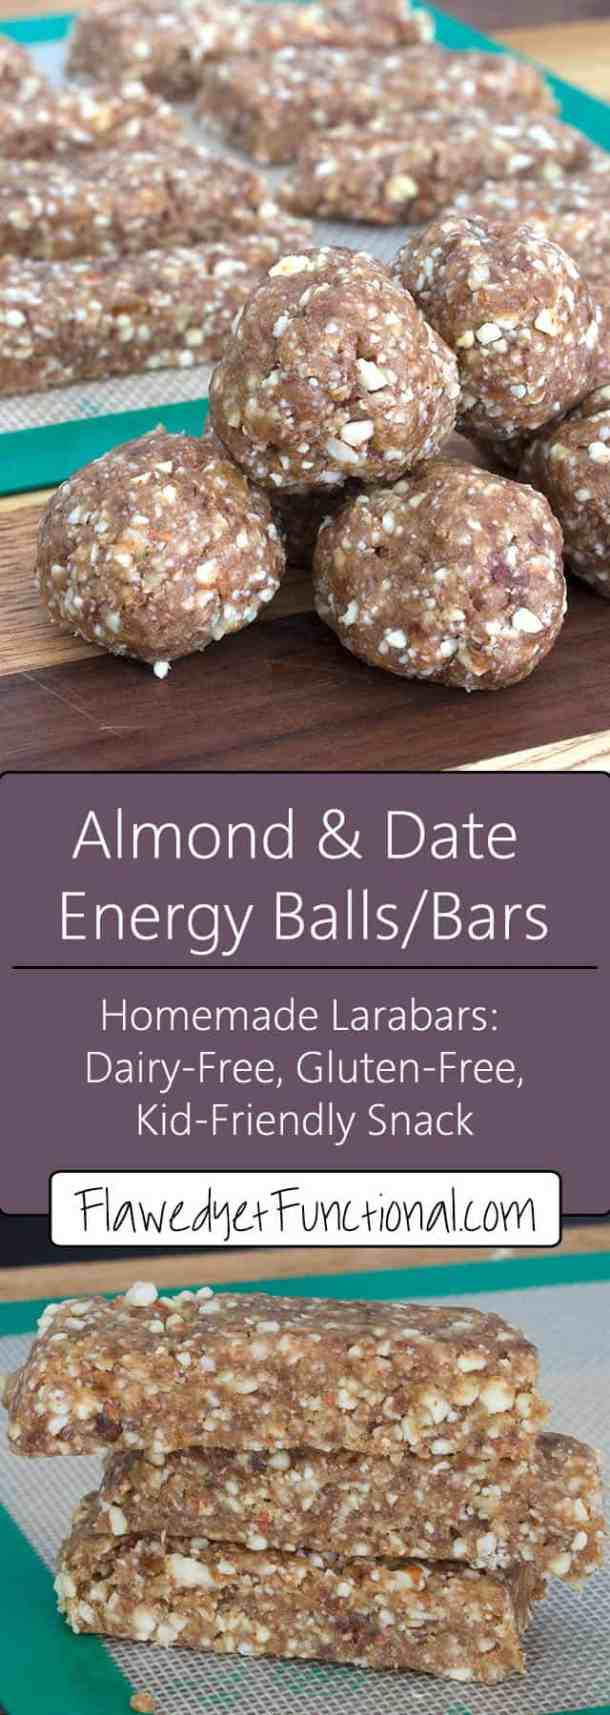 homemade almond larabar